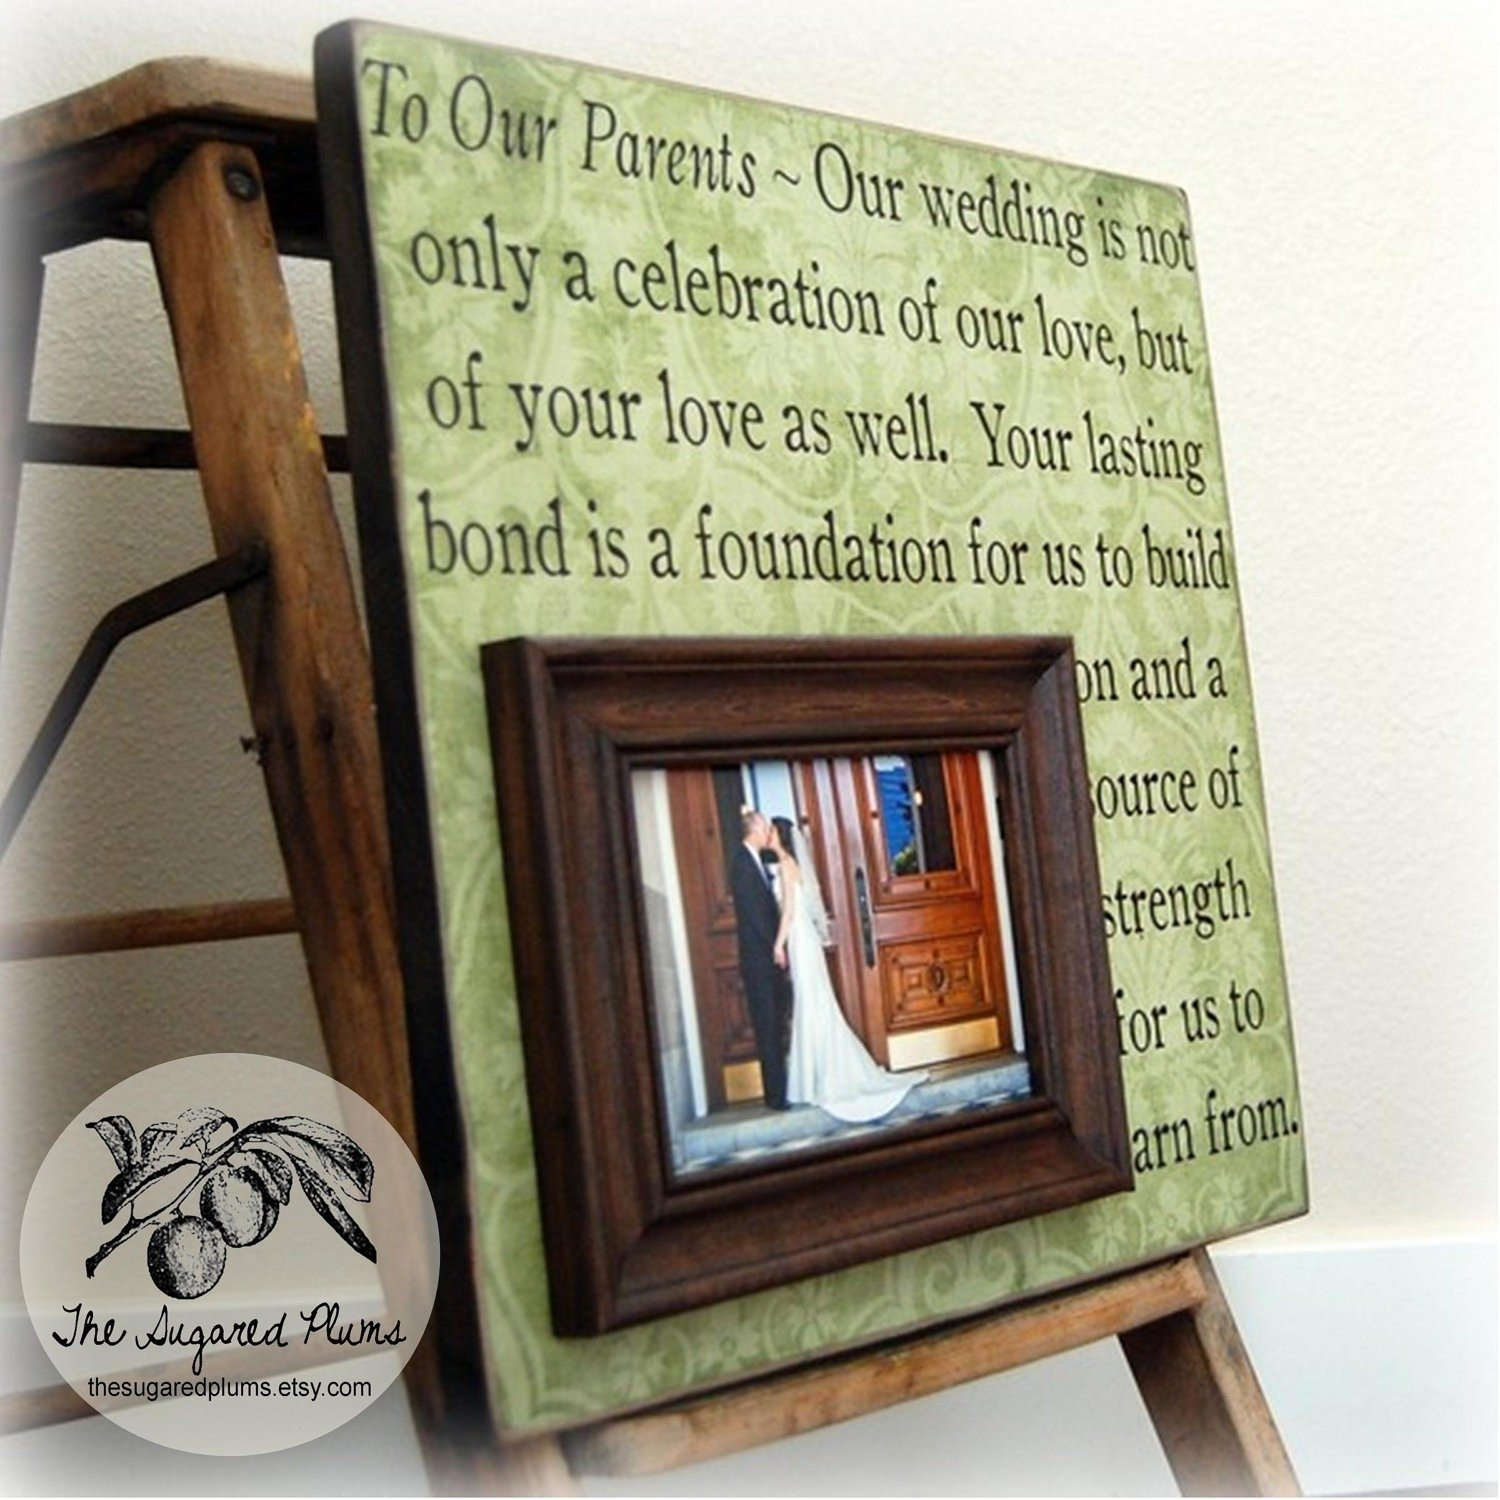 10 Pretty Wedding Gift Ideas From Parents gift ideas for parents 25th wedding anniversary inspirational ideas 2 2020